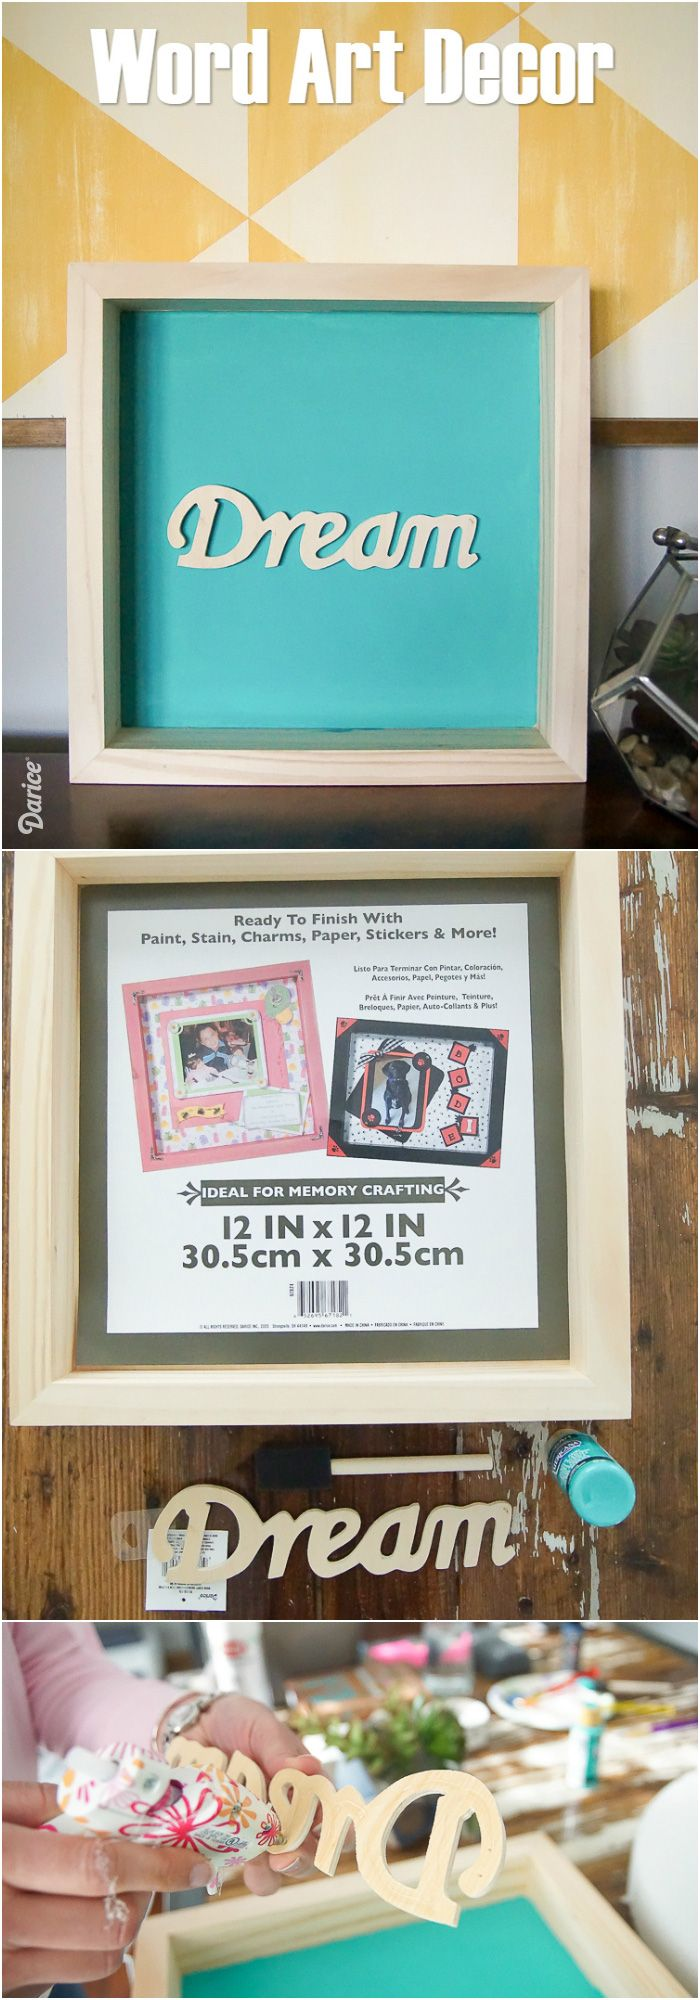 Bright vases trays dishes aroma lamps mirrors in beautiful frames - Diy Word Art Dream Shadowbox Decor